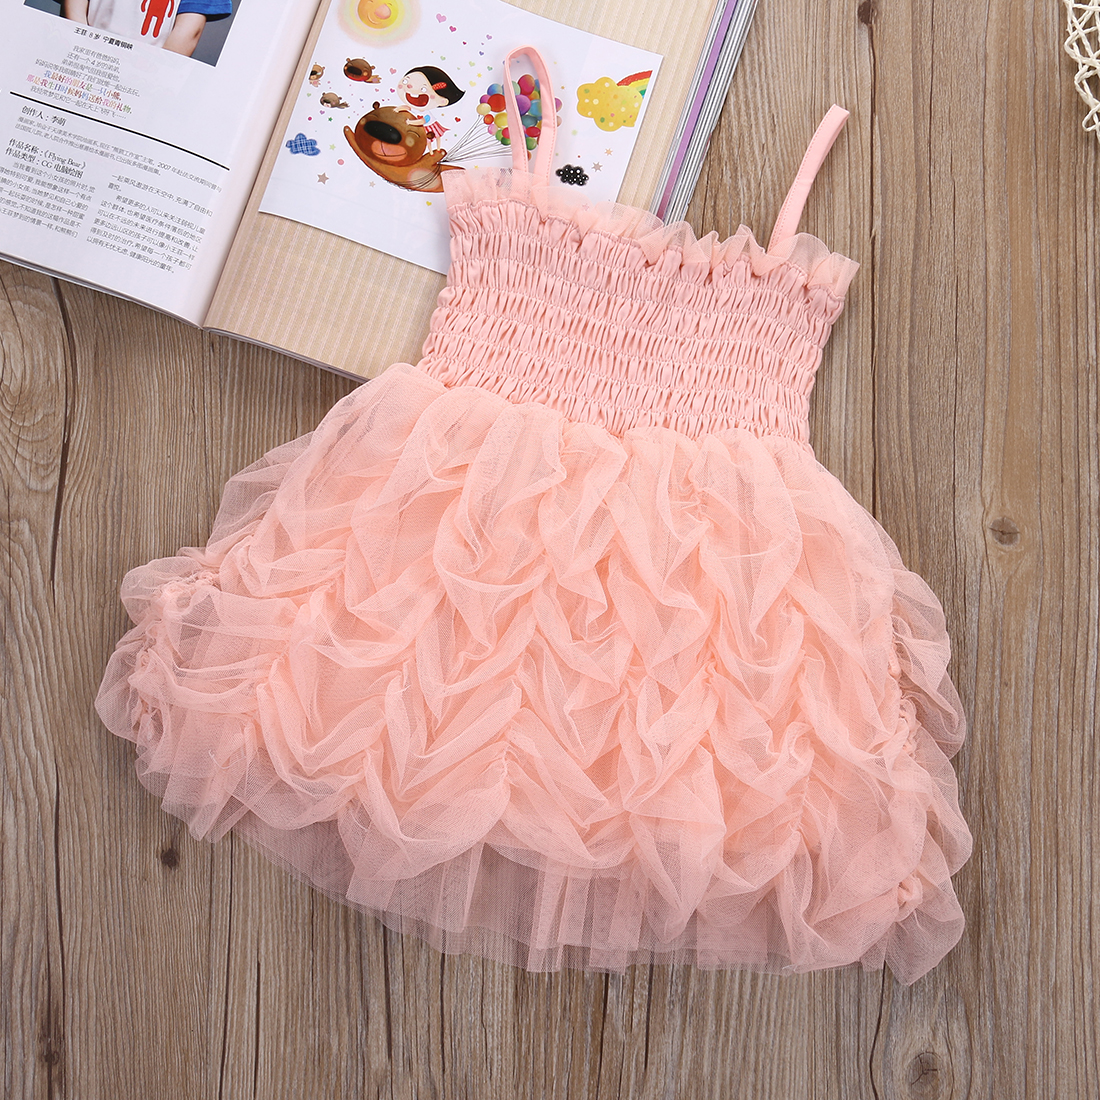 1d8d62e2f23 2017 Fashion Baby Girls Dresses Princess Pink Sundress For Party Ruffle  Bubble Tutu Dress Children Girl Clothing 1 6Y-in Dresses from Mother   Kids  on ...